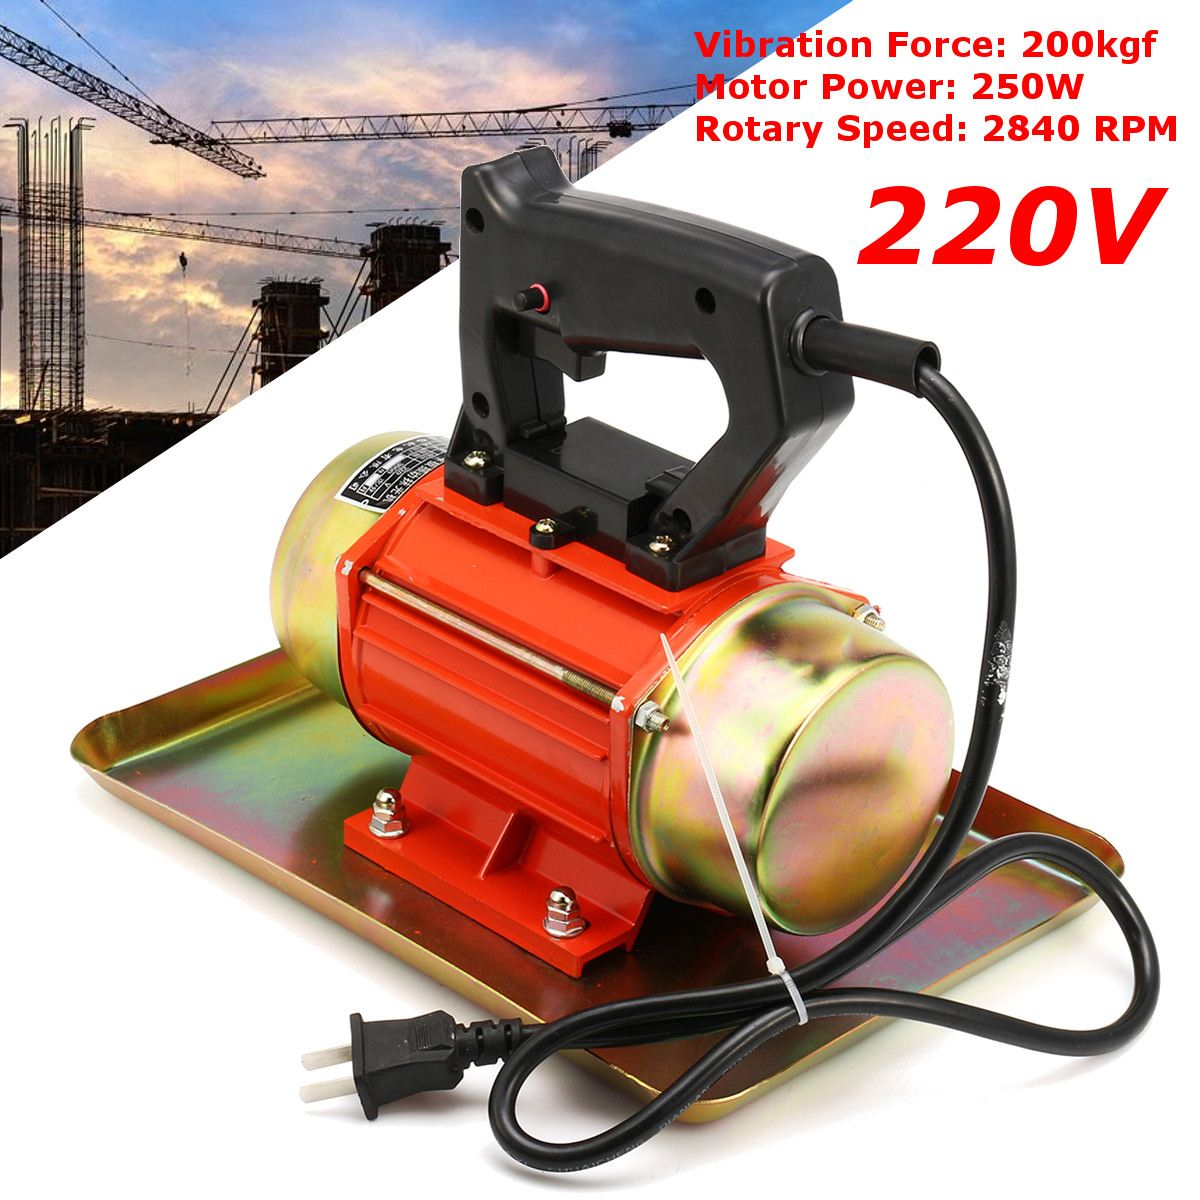 220V 250W 200kgf 2840RPM Table Motion Concrete Vibrator Motor Portable Construction Tool Hand-held Concrete Vibrator Motor